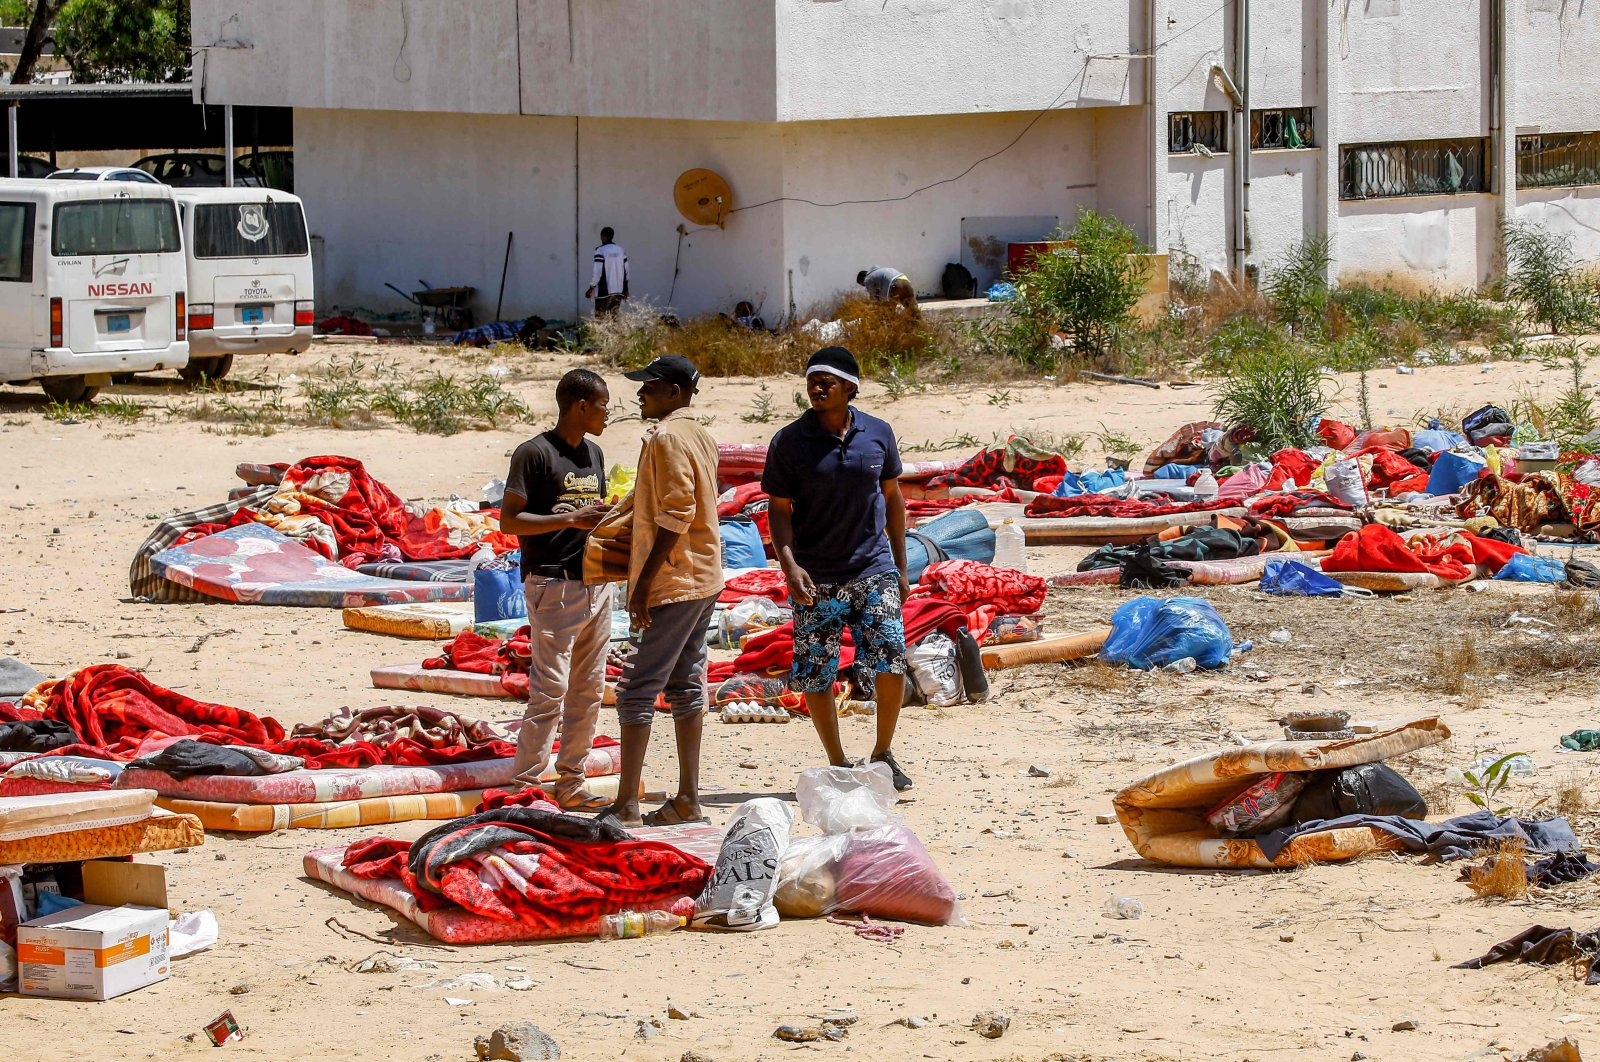 Migrants stand and walk outside at a detention centre used by the Libyan Government of National Accord (GNA) in the capital Tripoli's southern suburb of Tajoura on July 3, 2019, following an airstrike on a nearby building that left dozens killed the previous night. (AFP Photo)